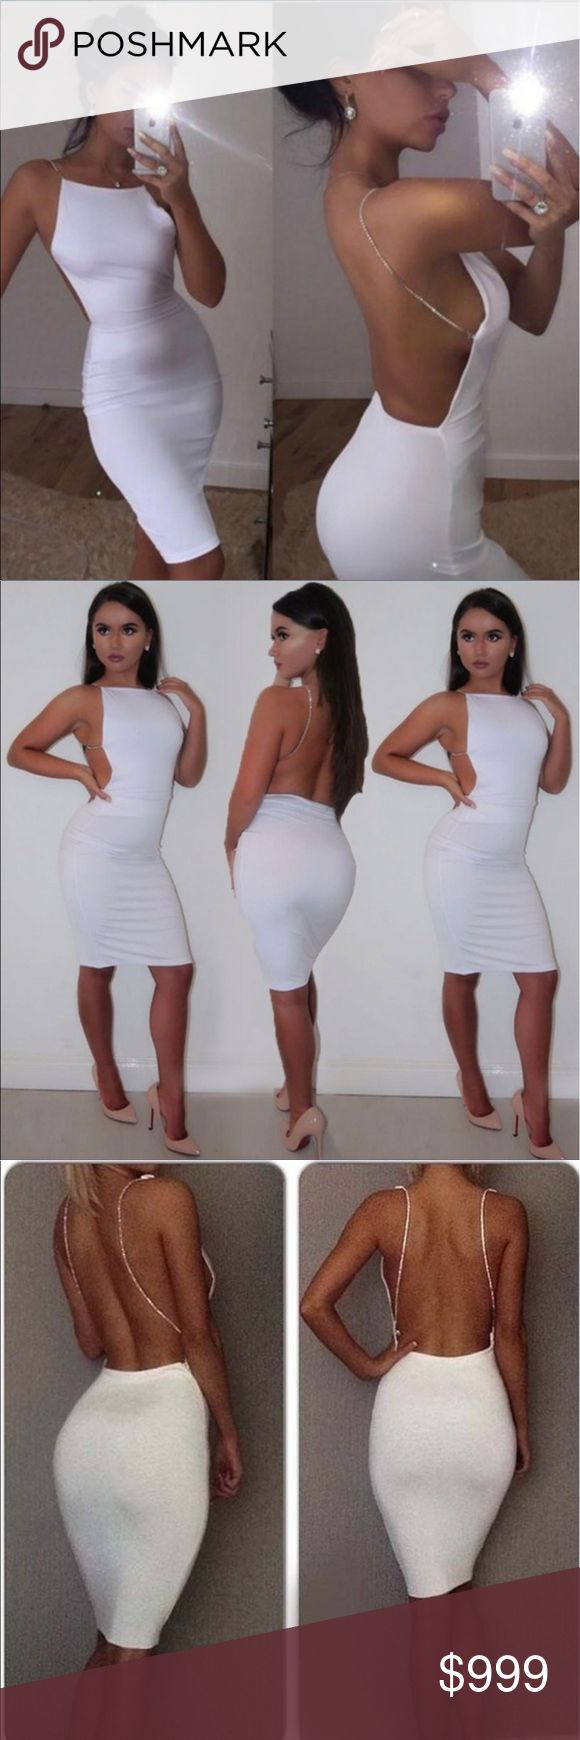 🥀🖤New Arrival 🖤🥀Sexy All White Dress 🖤🥀 Sexy All White BodyCon Dress Free People Tops